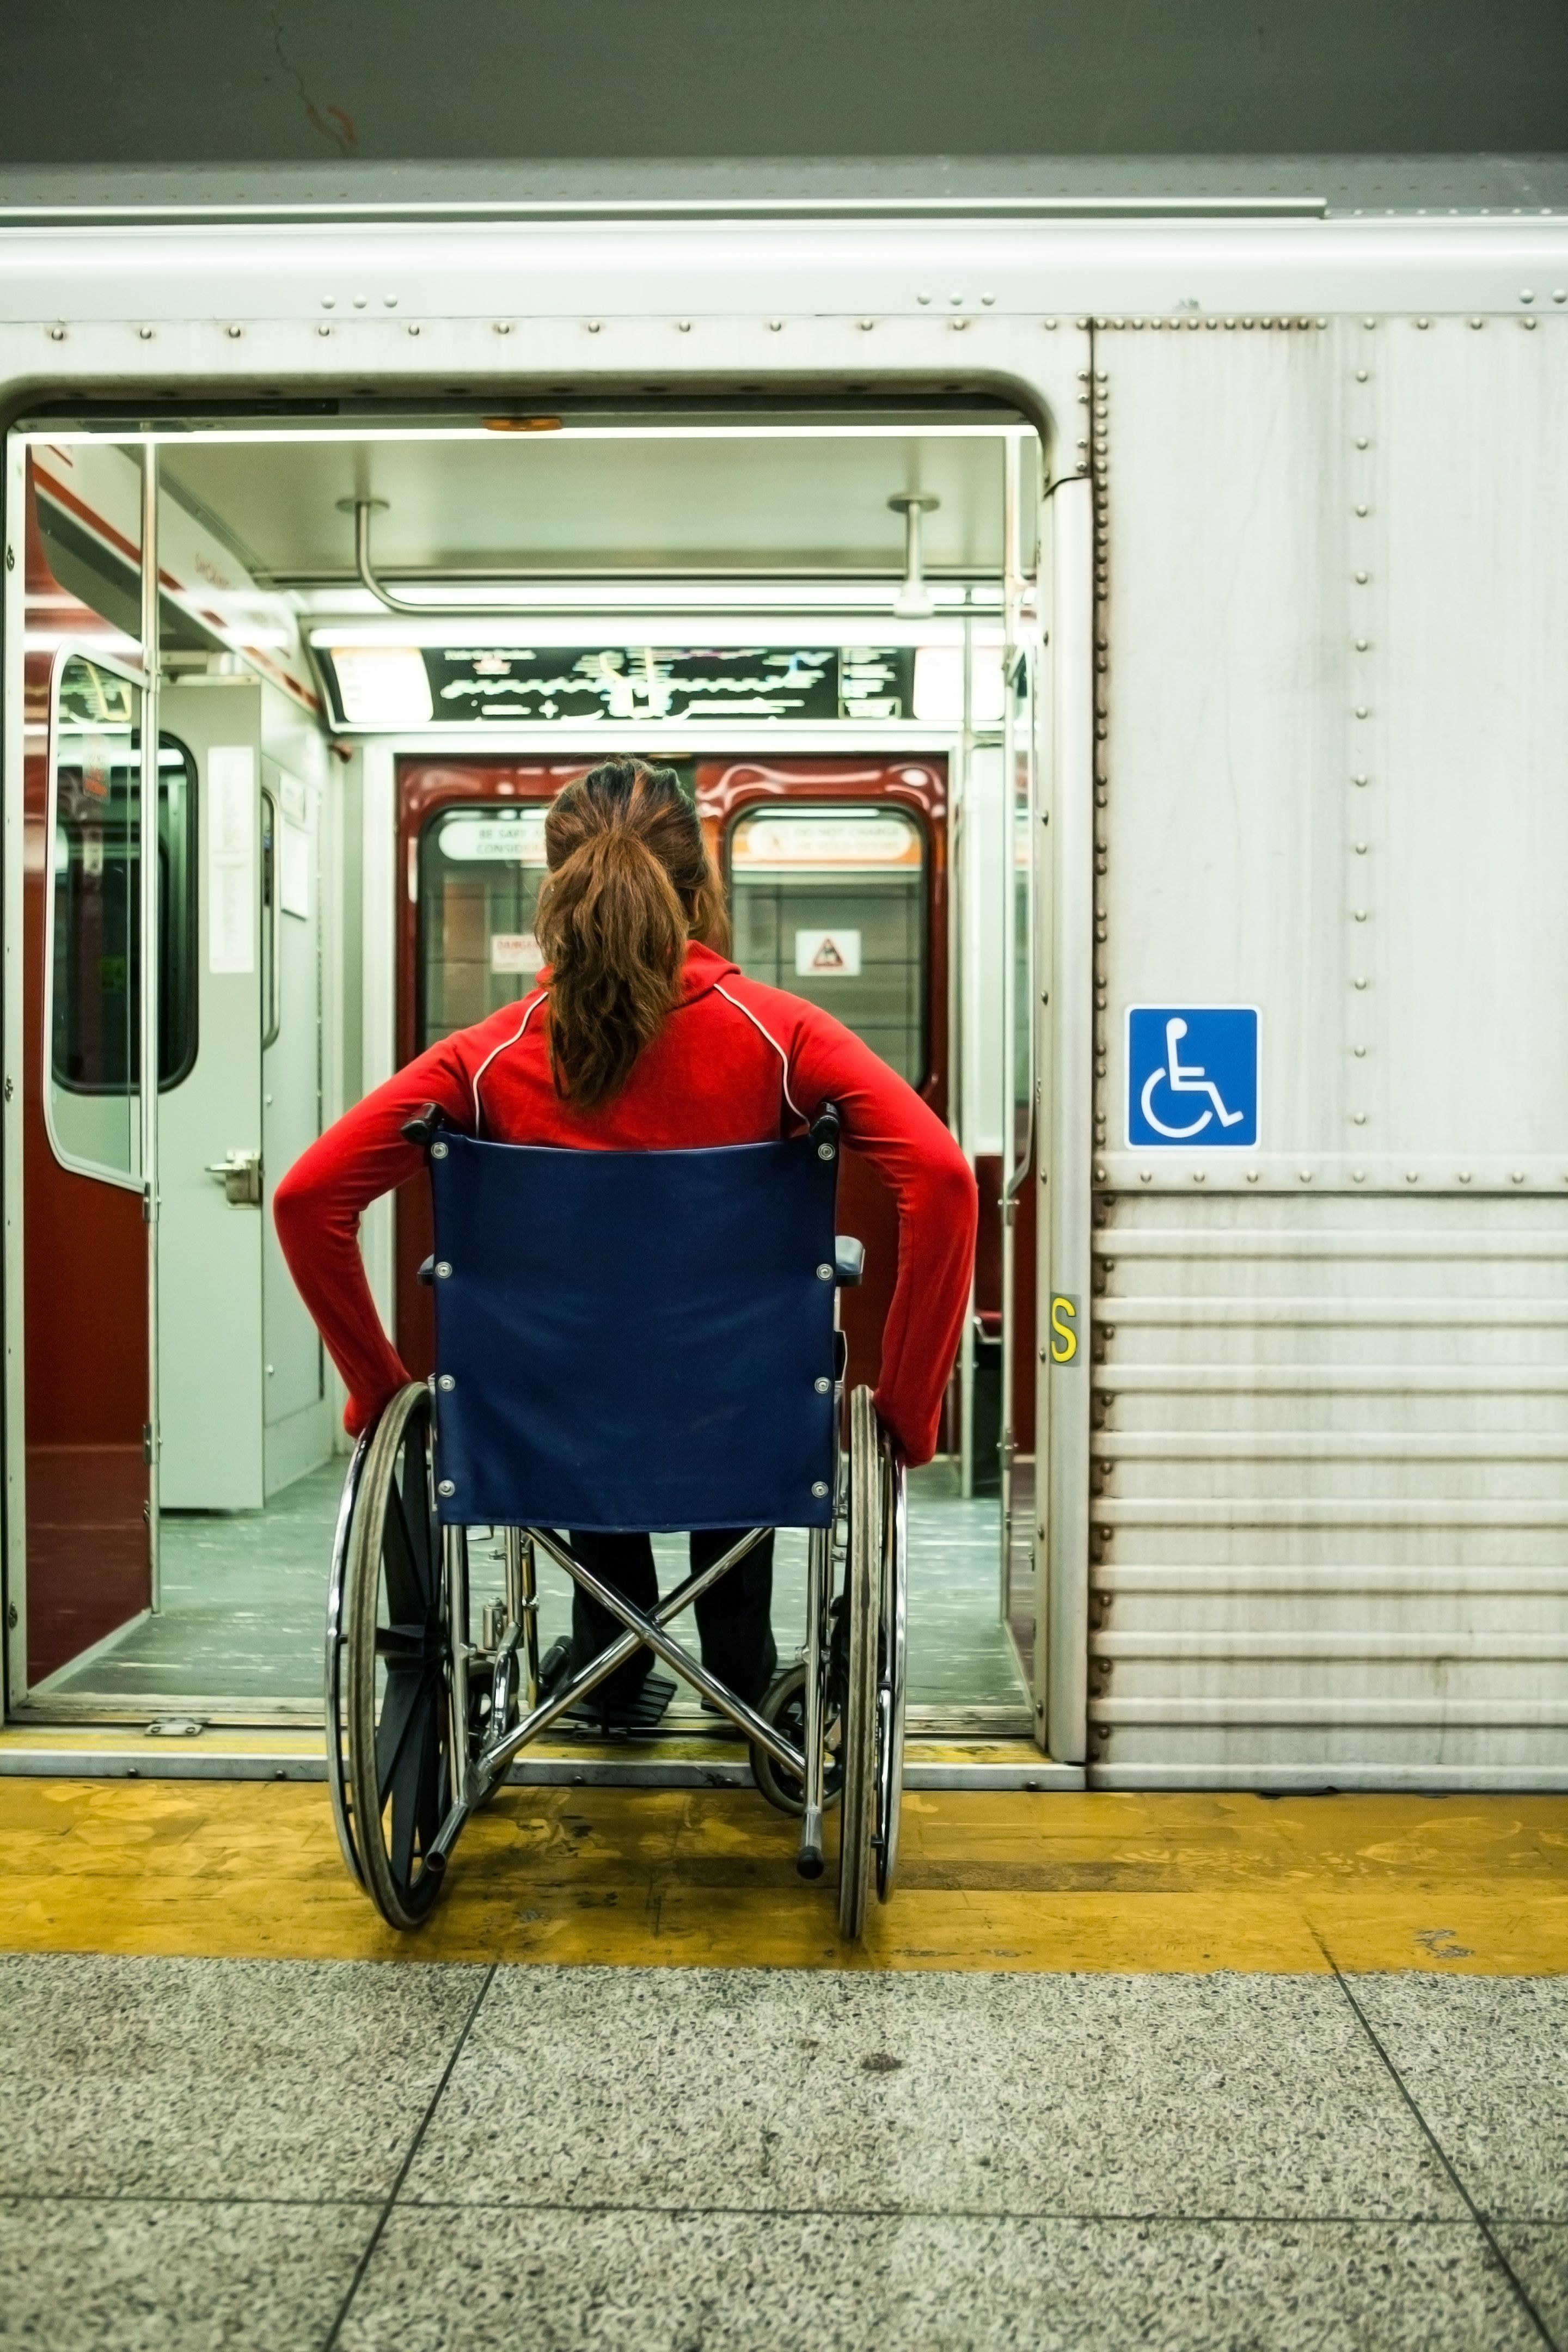 'It Will Be Life-Changing': New Train App To Help Disabled Passengers Praised By